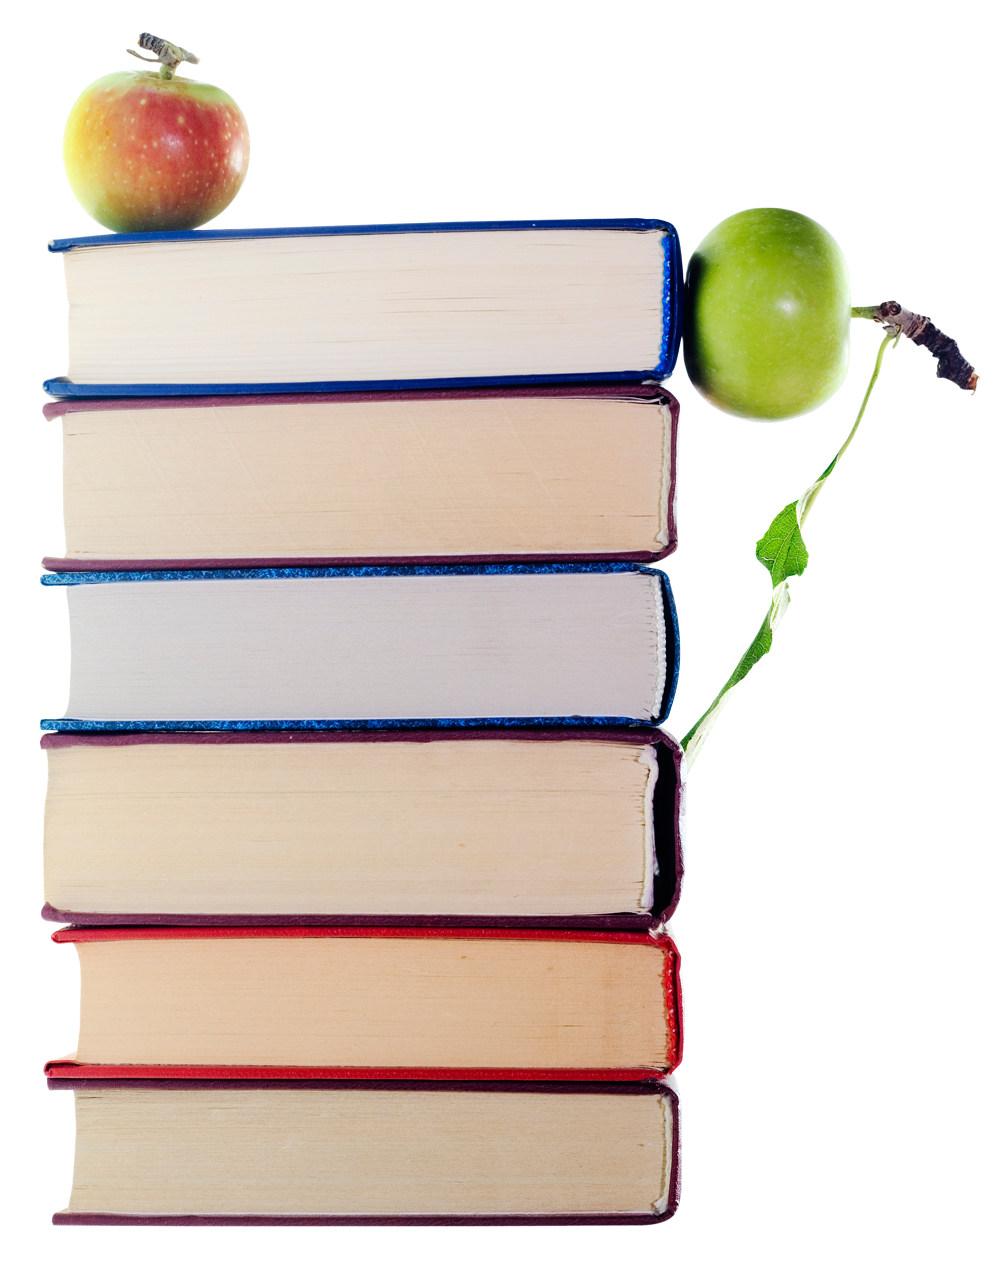 Green  Apples in Stack of Books PNG Image